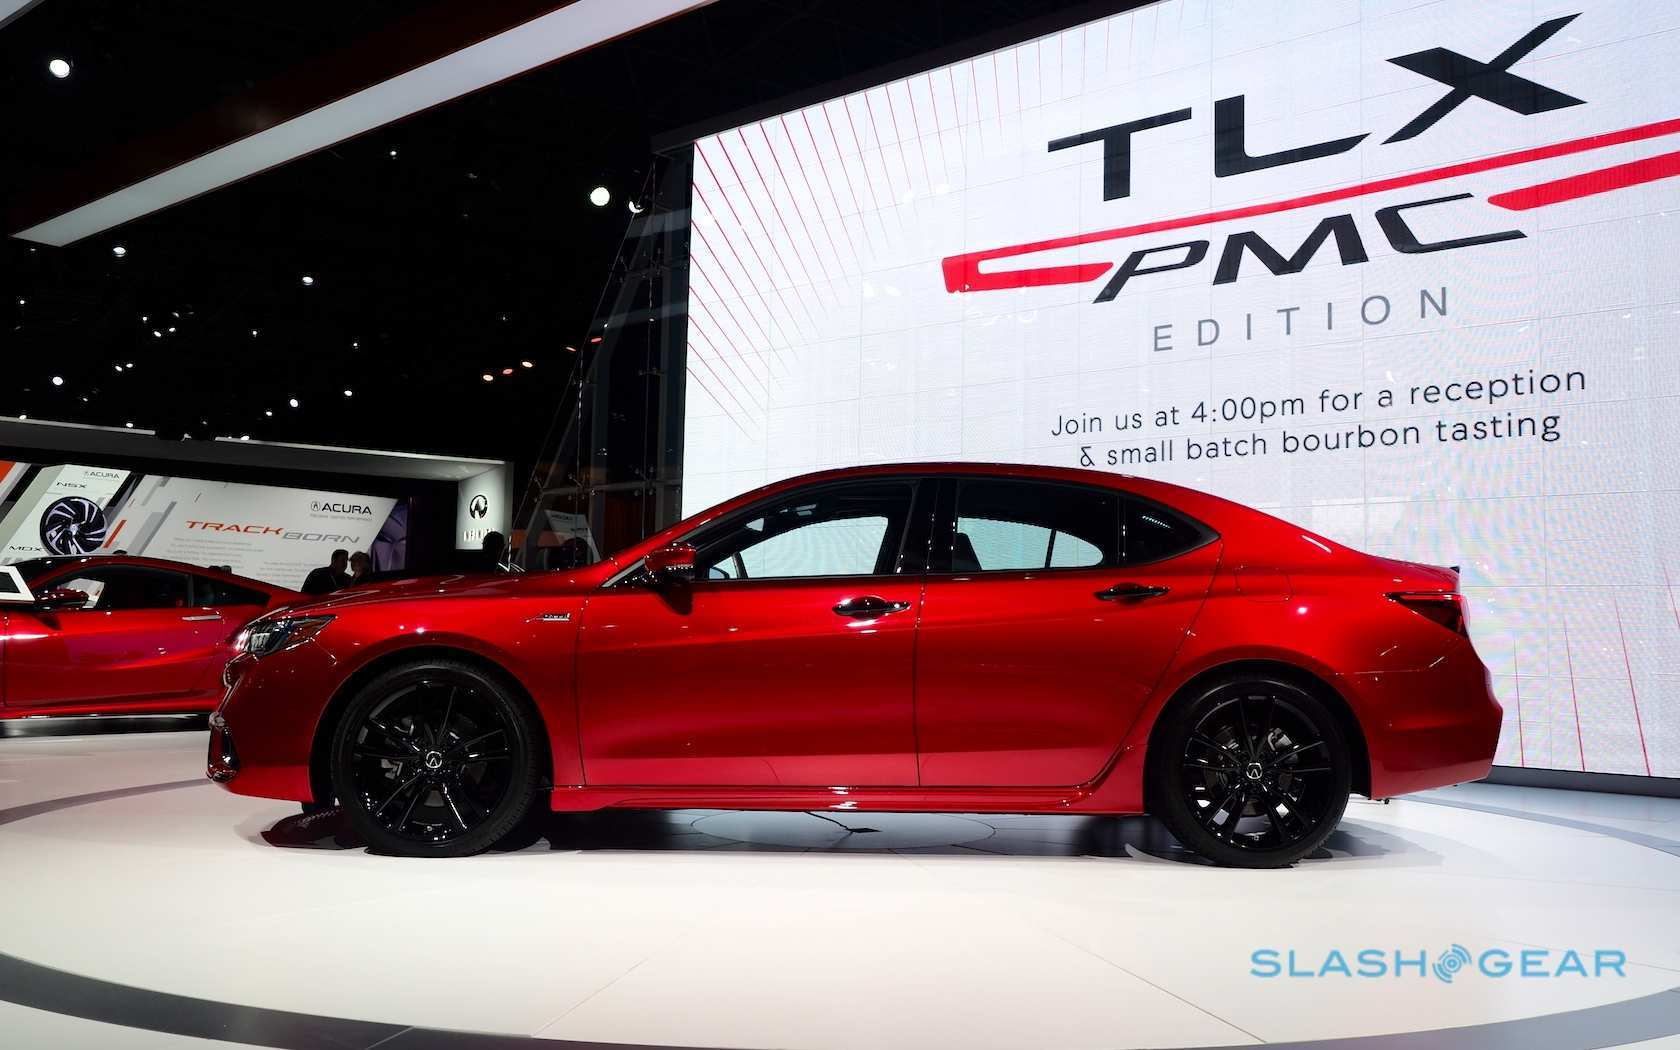 60 Concept of 2020 Acura Tlx Pmc Edition Specs Photos by 2020 Acura Tlx Pmc Edition Specs